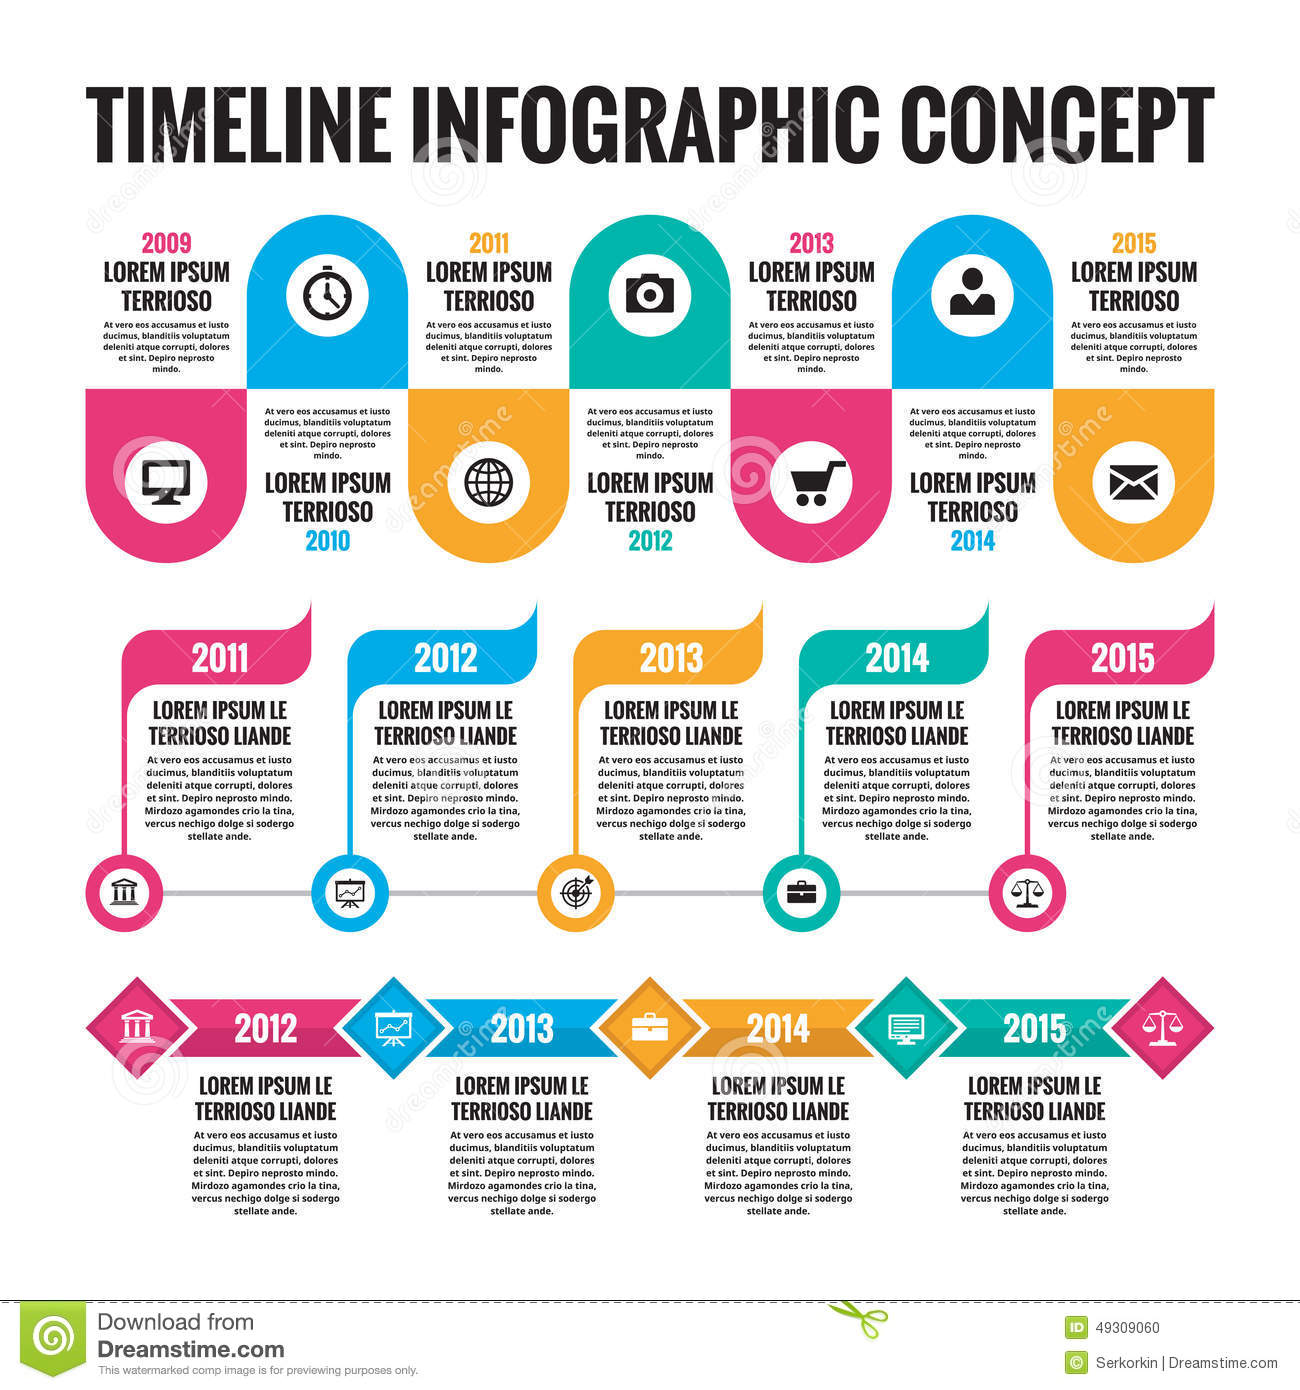 Infographic concept in flat design style timeline for Del website